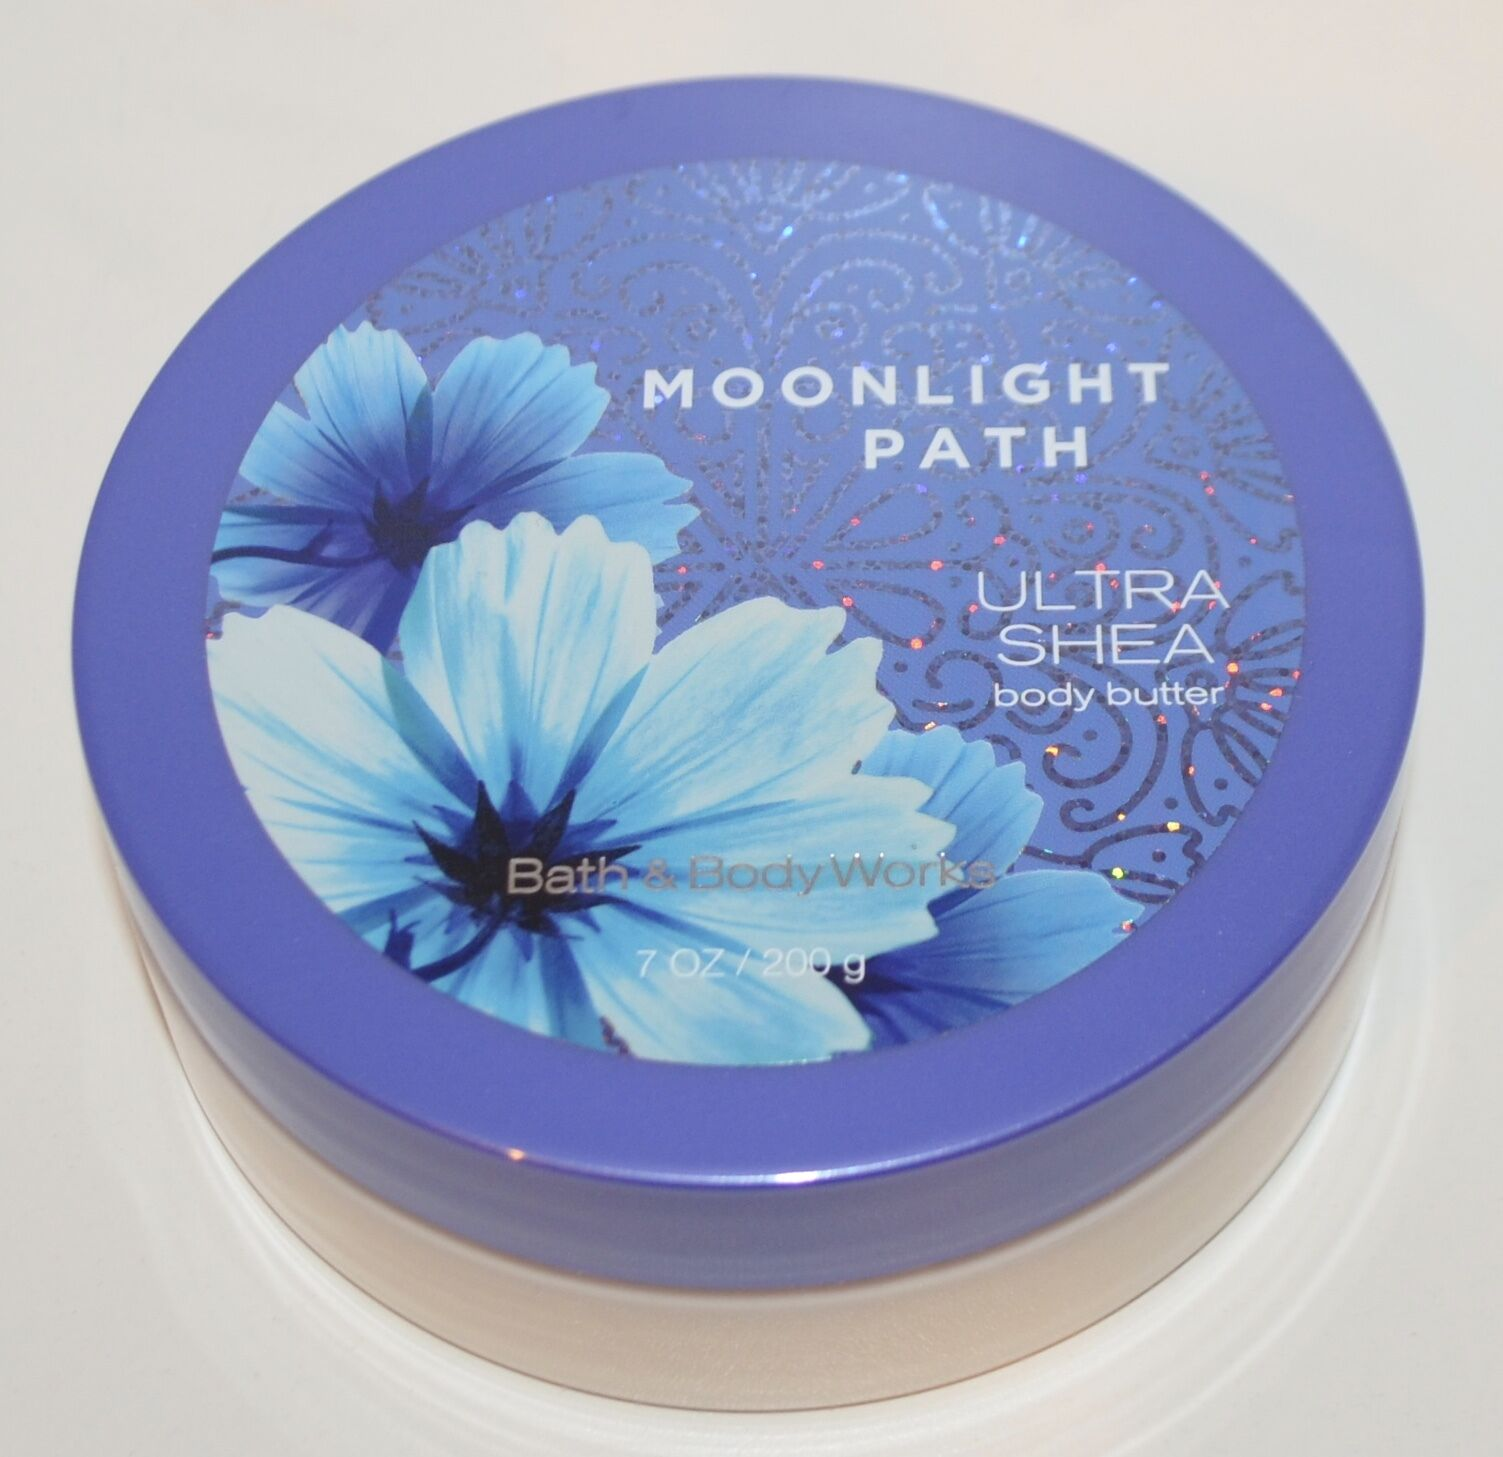 NEW BATH & BODY WORKS MOONLIGHT PATH ULTRA SHEA BODY BUTTER